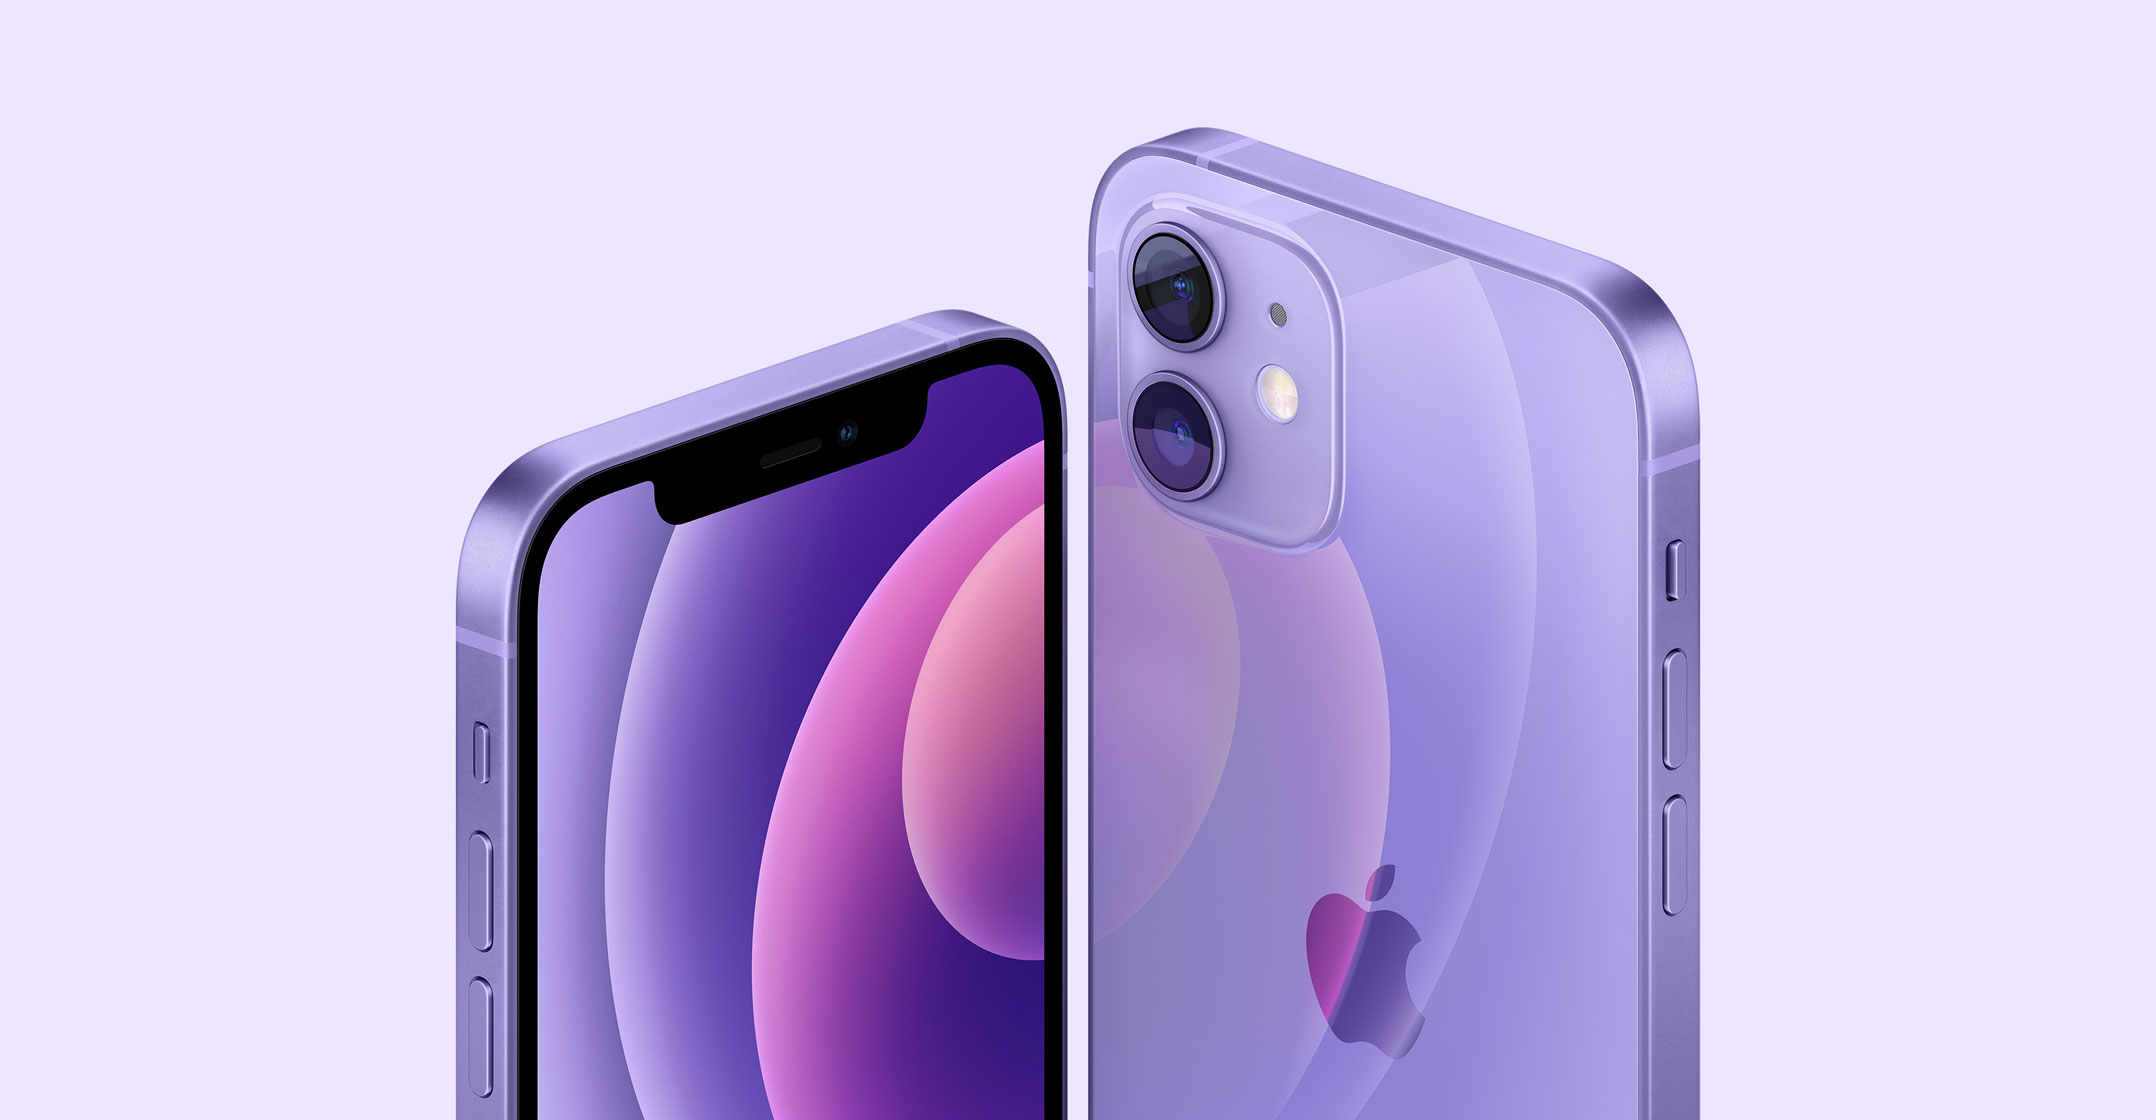 Global chip crisis going from bad to worse iphone 12 purple 2156 1120